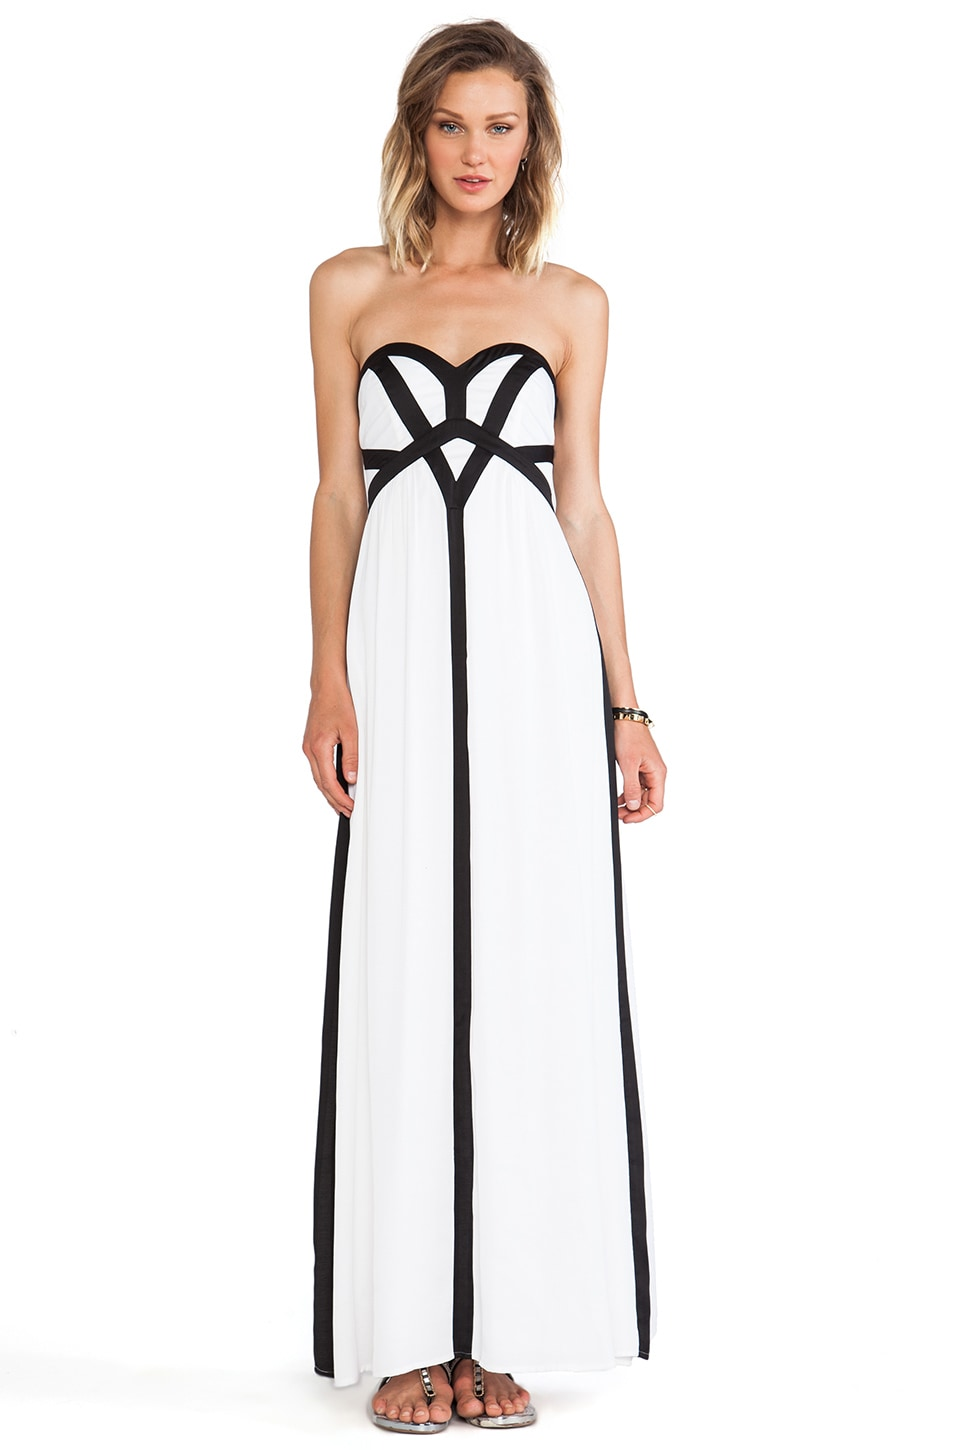 Wish Midas Maxi Dress in White